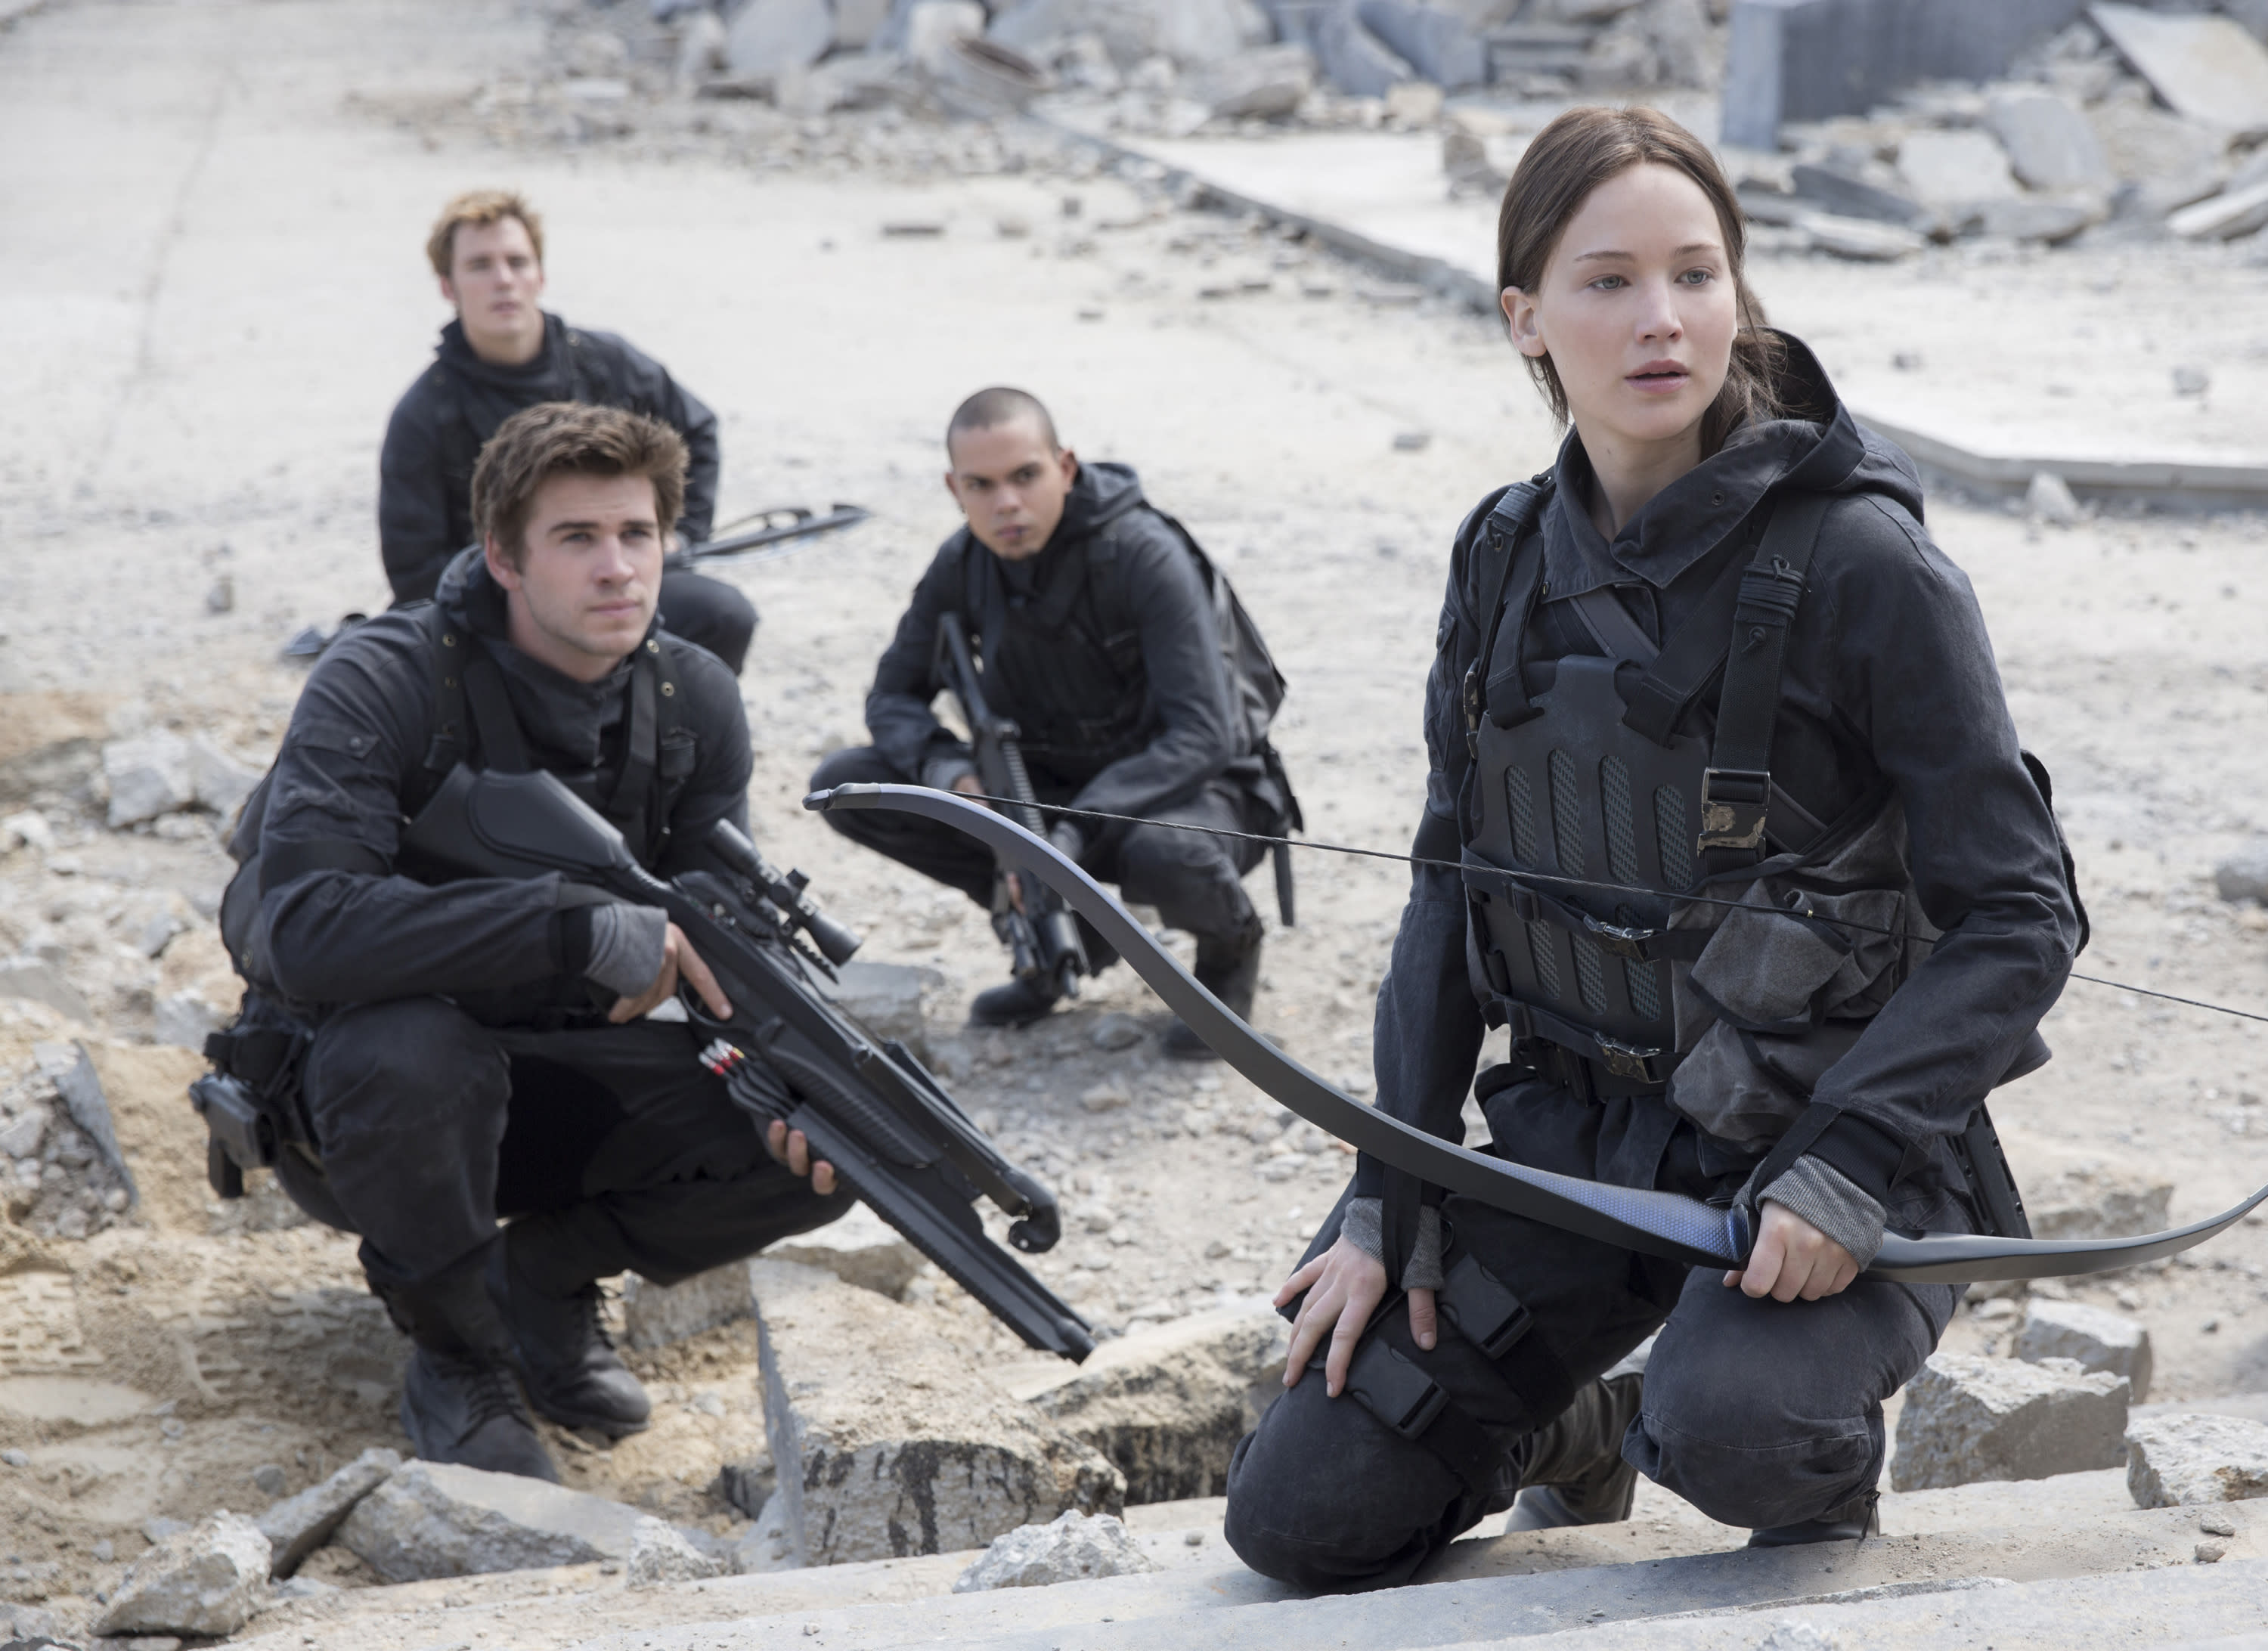 Box Office Top 20: Final 'Hunger Games' movie opens on top